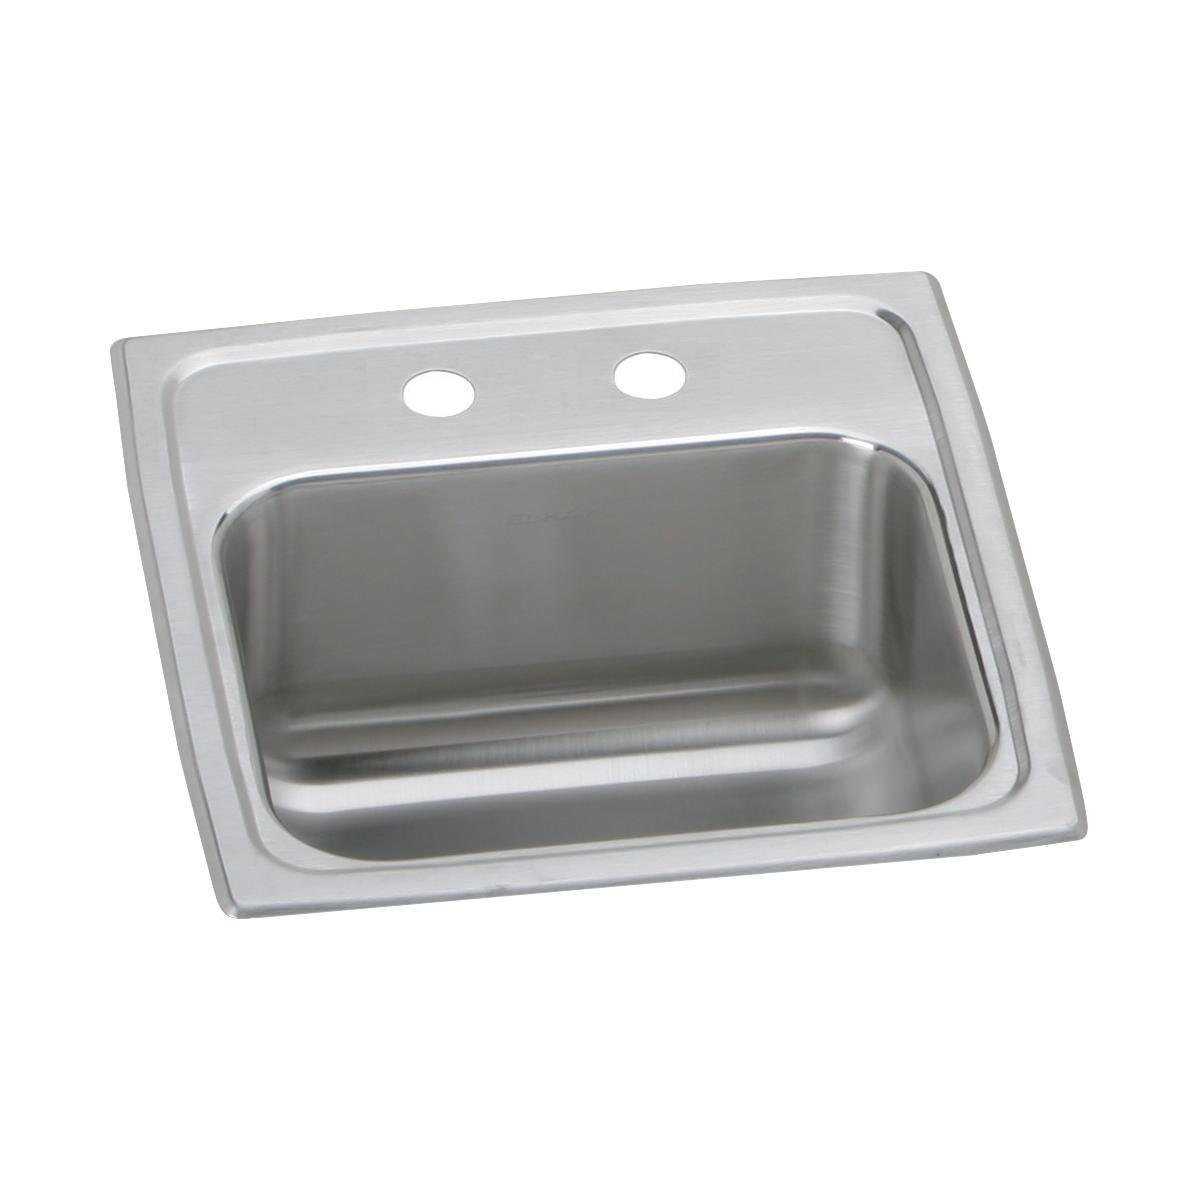 15 x 15 x 6 two hole 20 gauge elkay celebrity hospitality stainless steel bar sink without faucet ledge